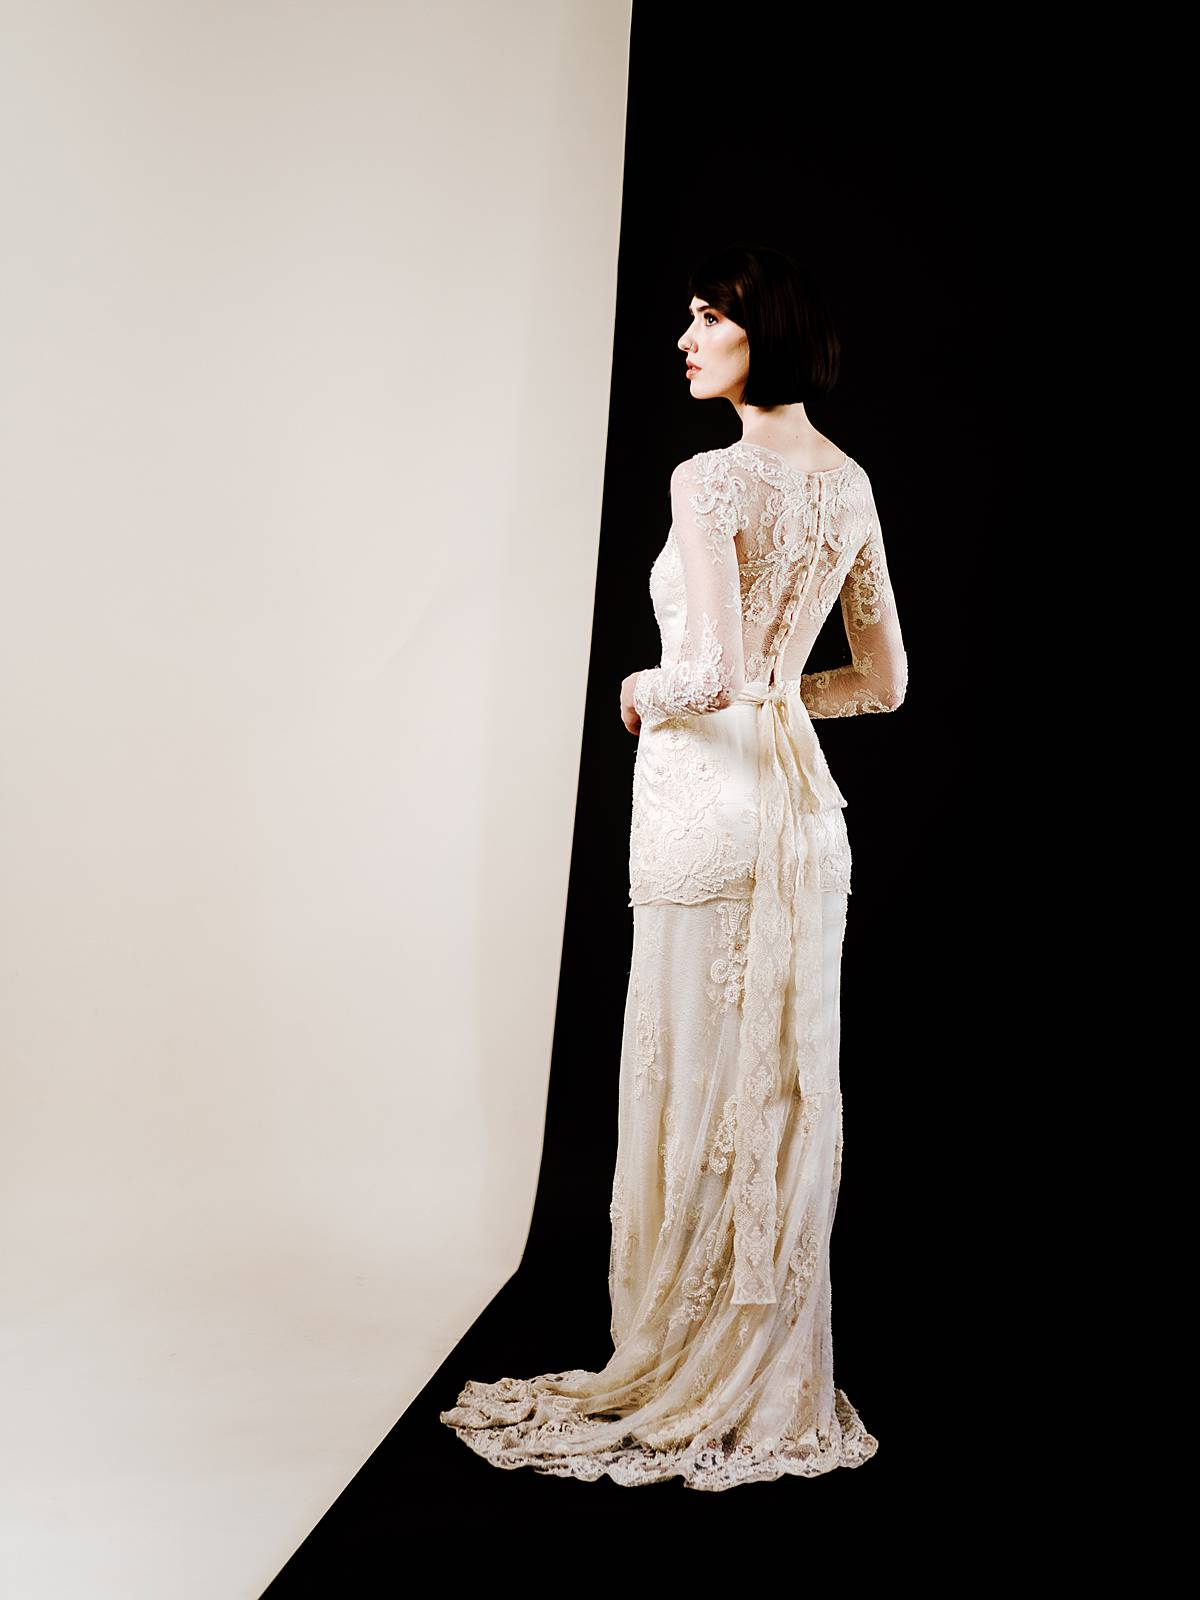 lace wedding dress back in cream by claire pettibone photographed in studio by brian d smith photography